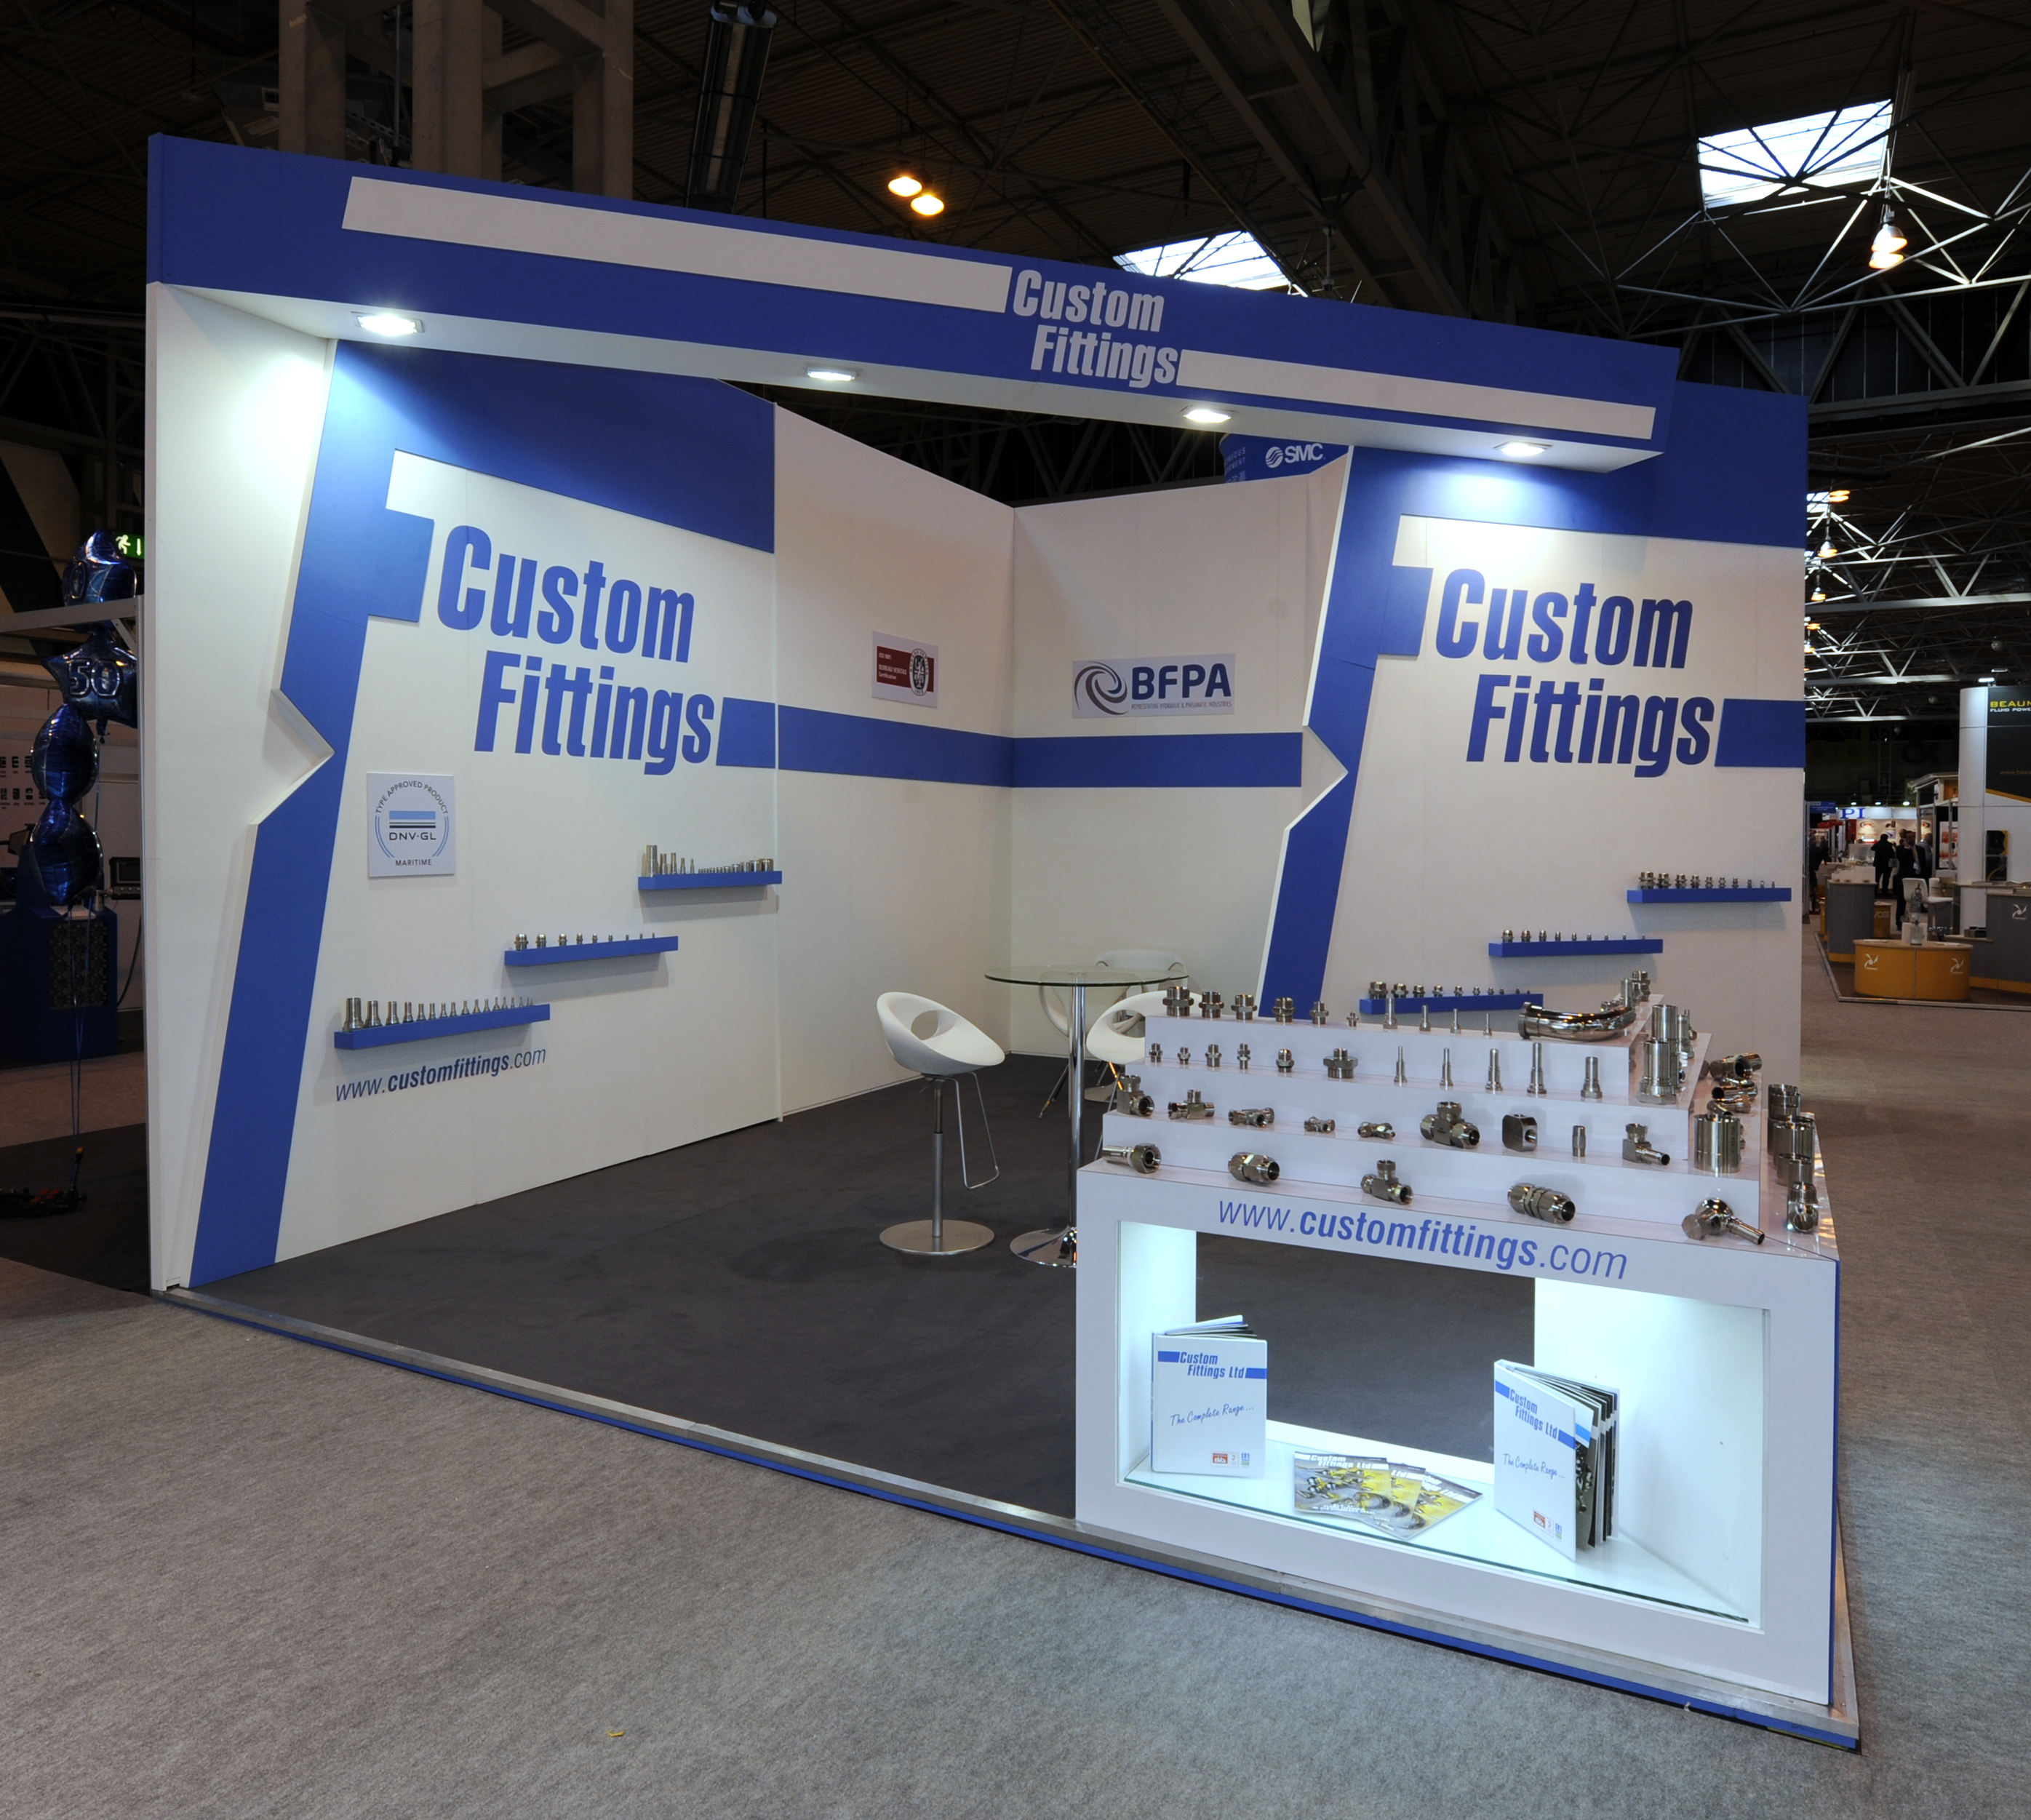 Exhibition Stand Builders Yorkshire : Custom fittings